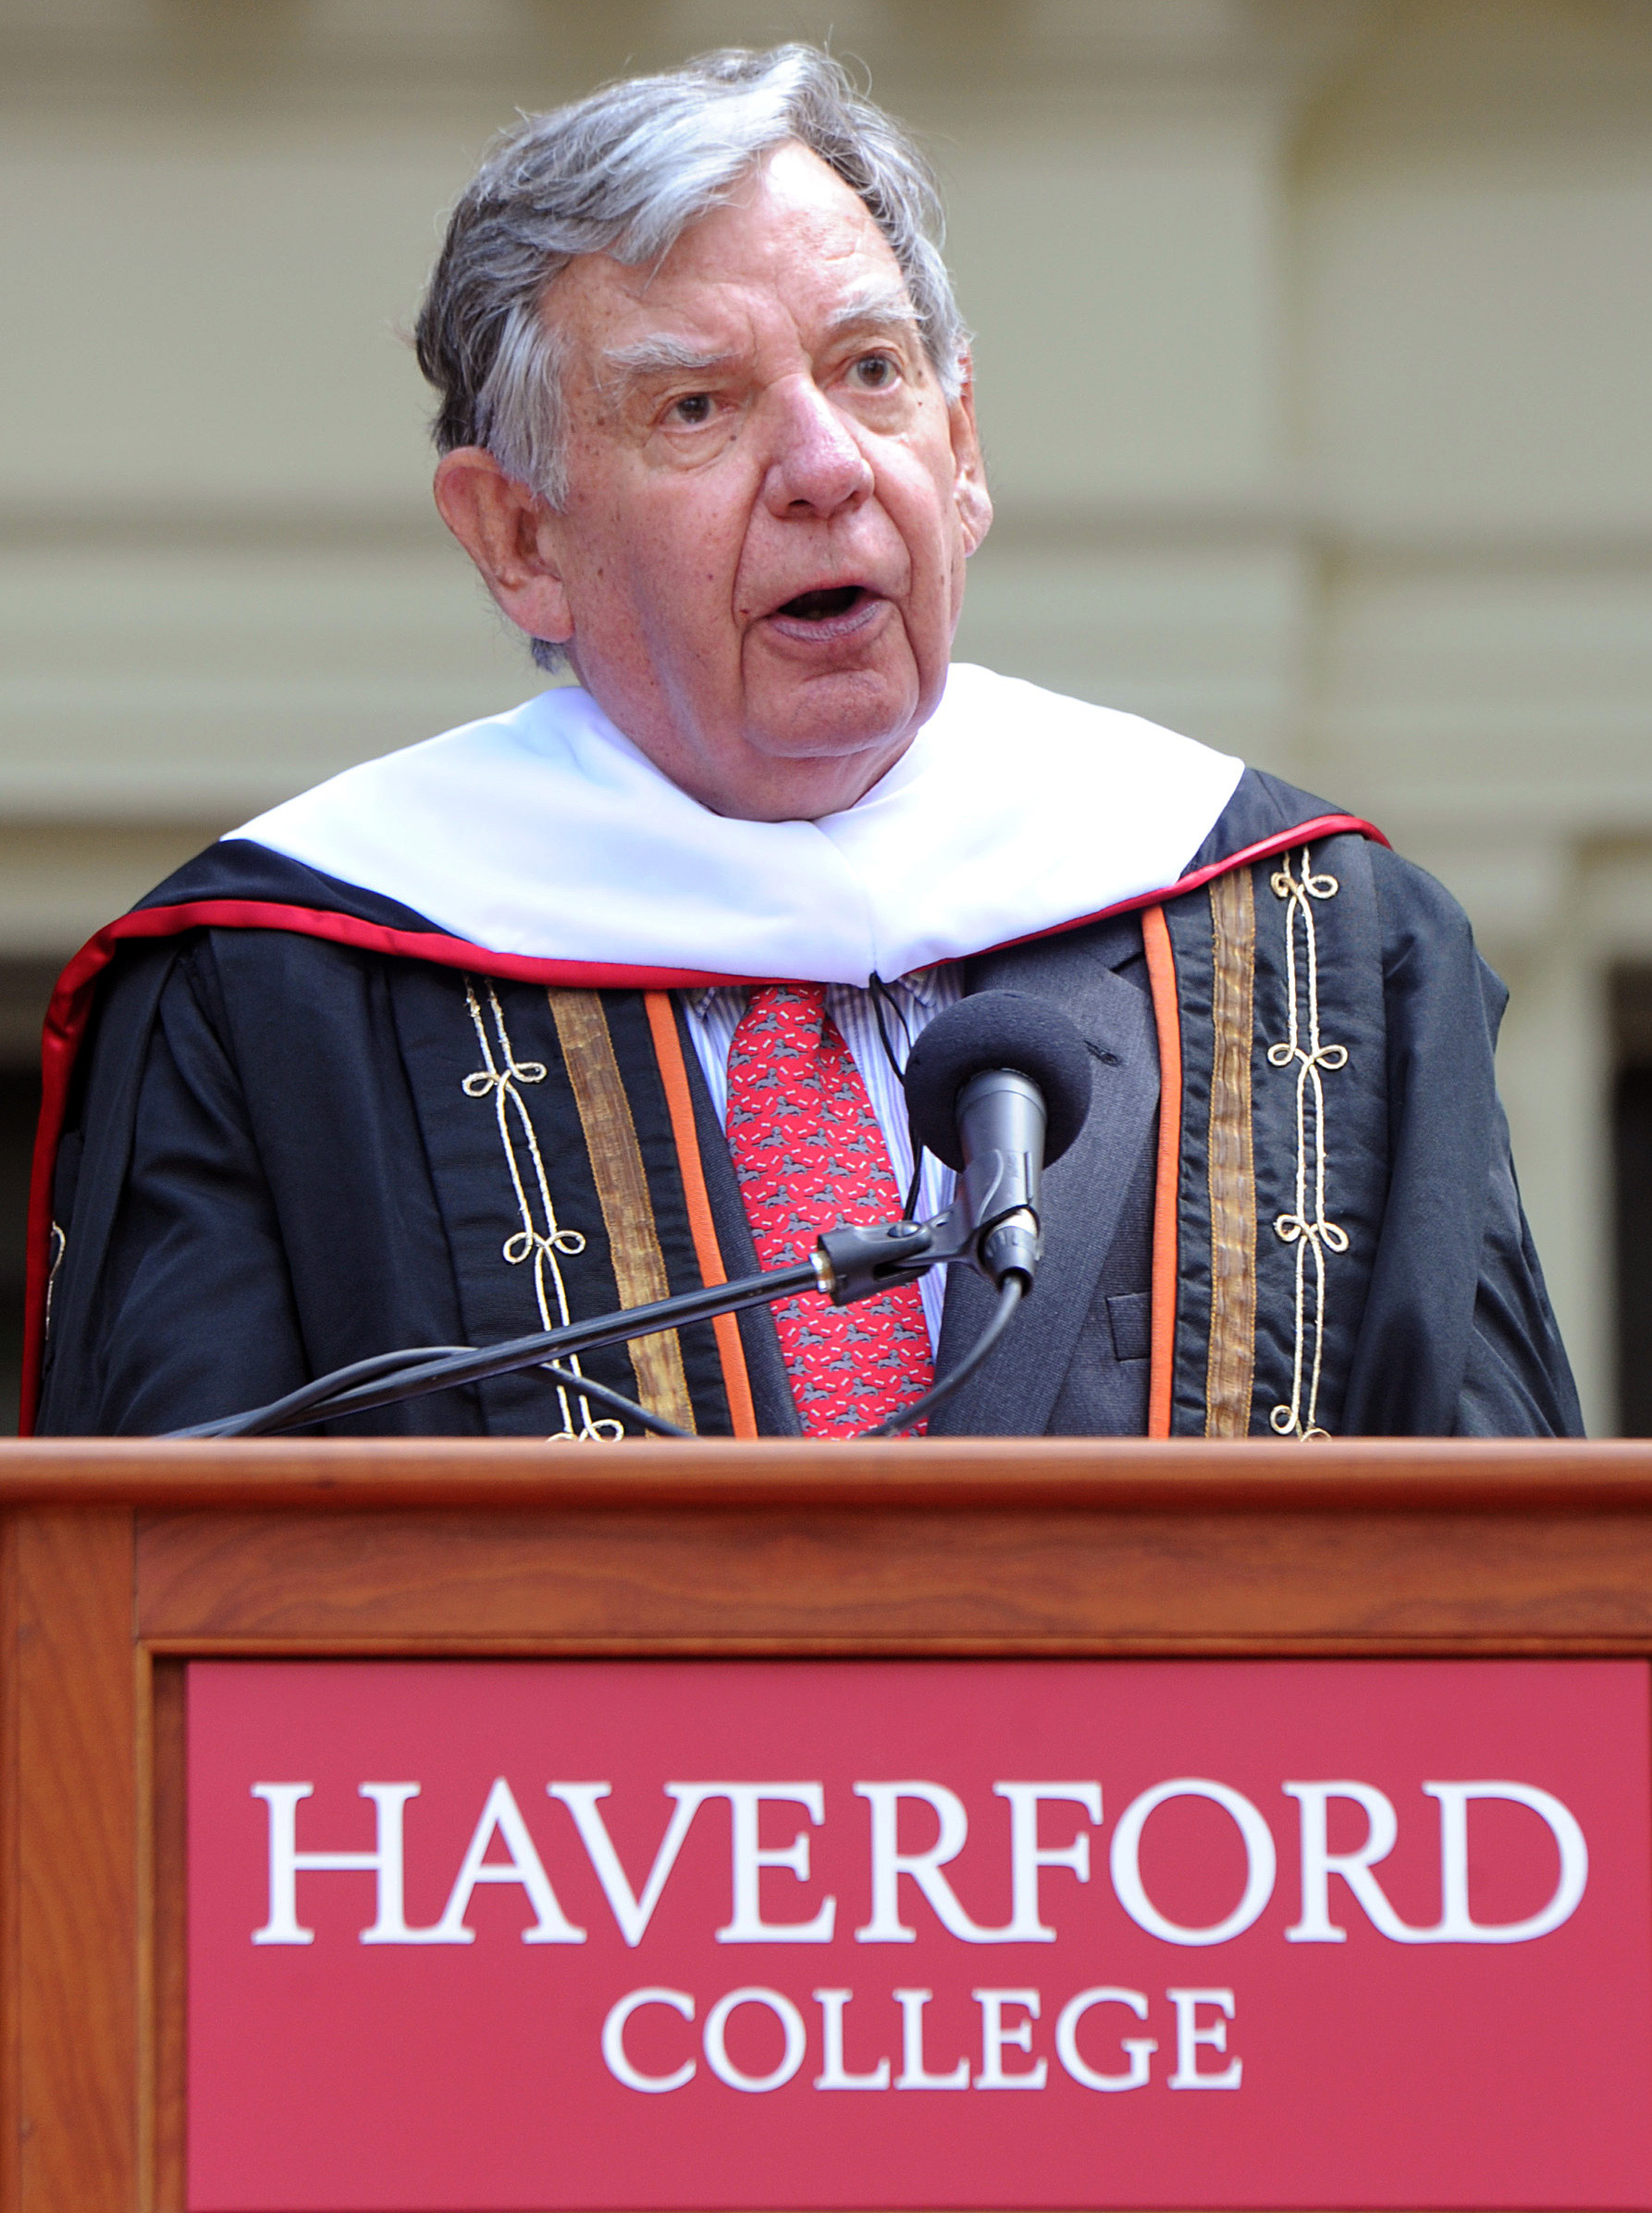 William Bowen, former president of Princeton University, delivers his second commencement speech to the 2014 graduates of Haverford College, on May 18, 2014.